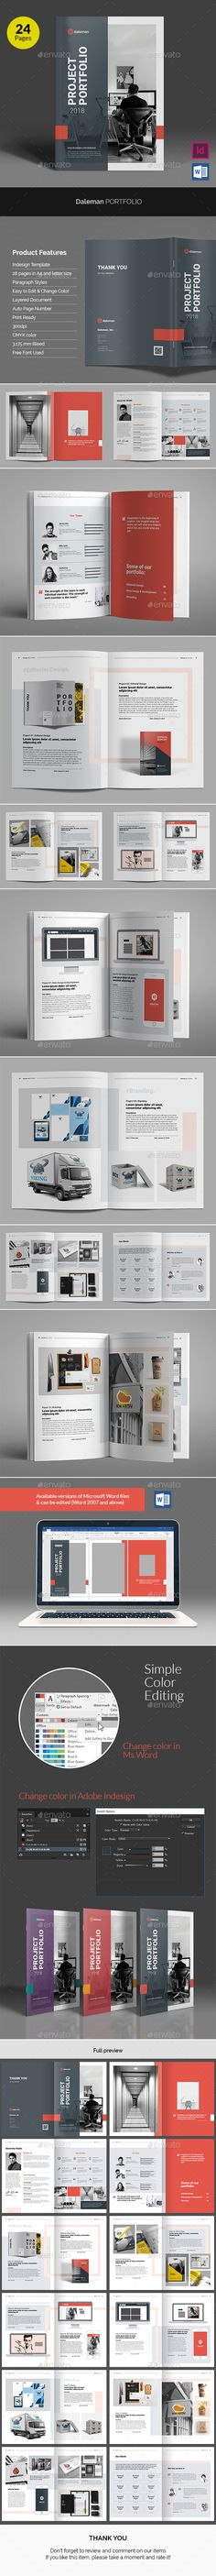 Daleman Project Portfolio Brochure Template InDesign INDD - 24 pages in A4 and Letter Size